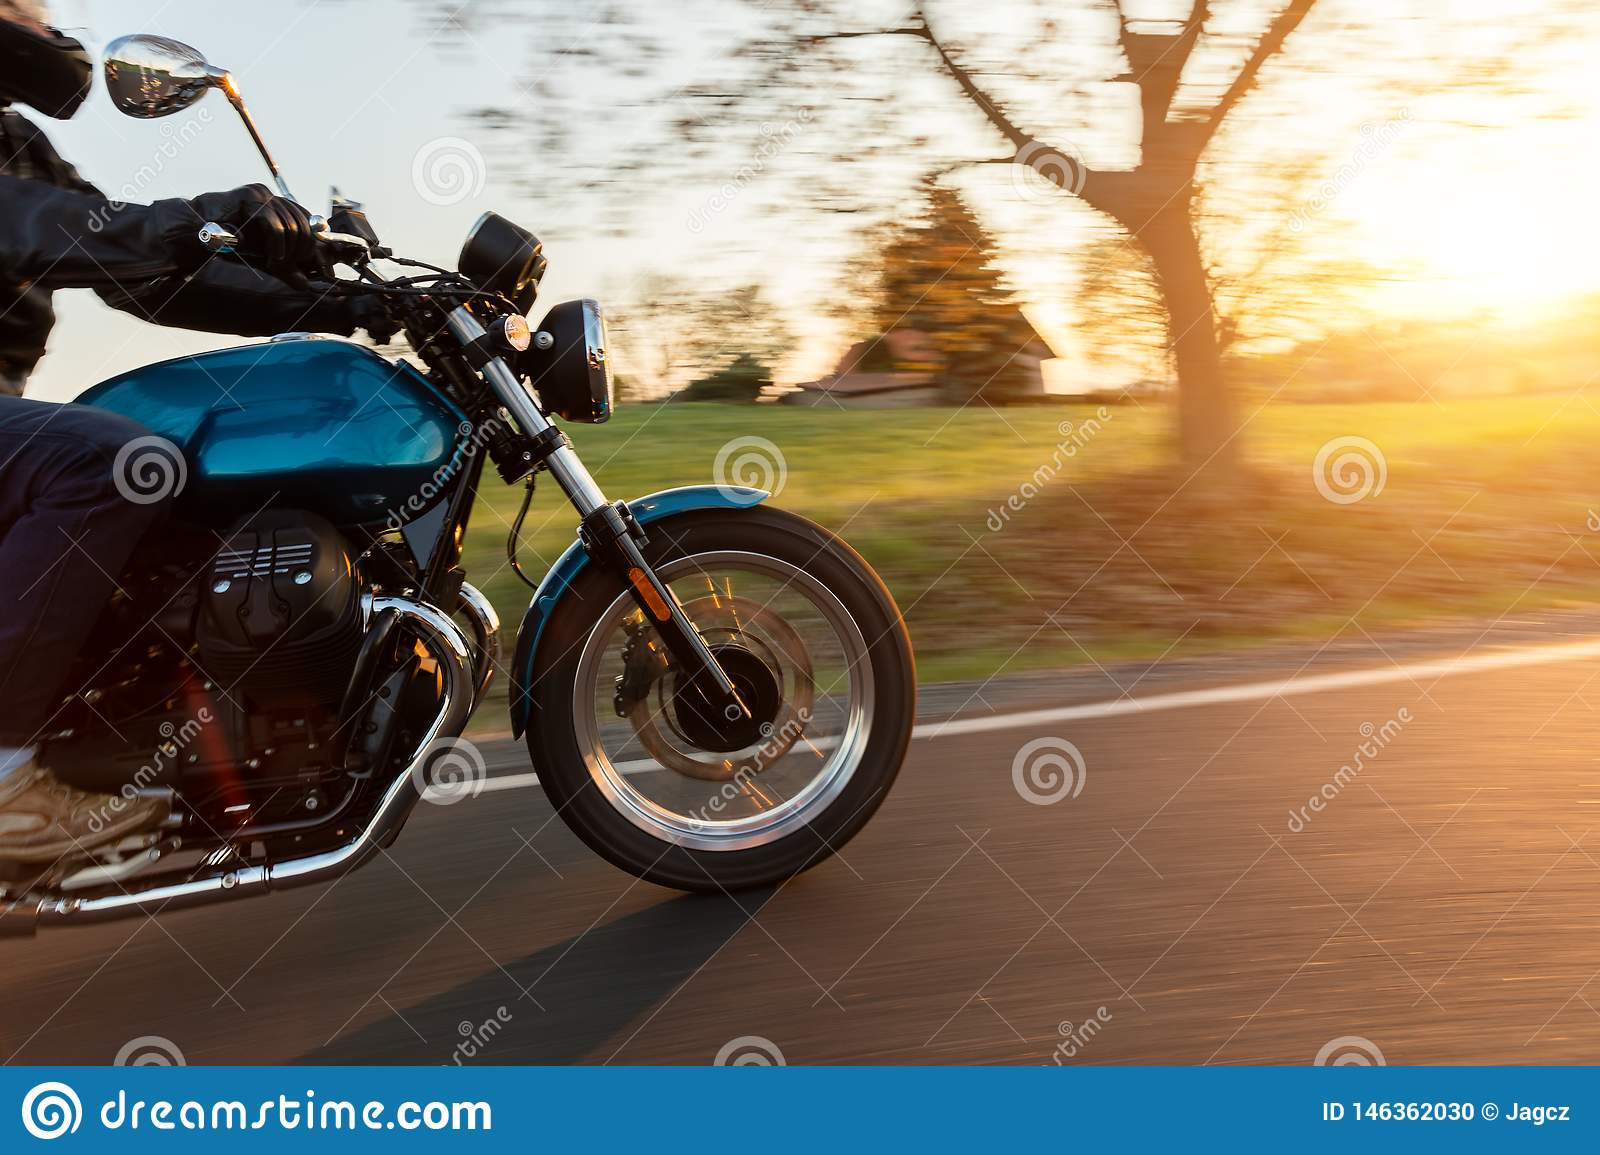 Motorcycle driver riding in European road